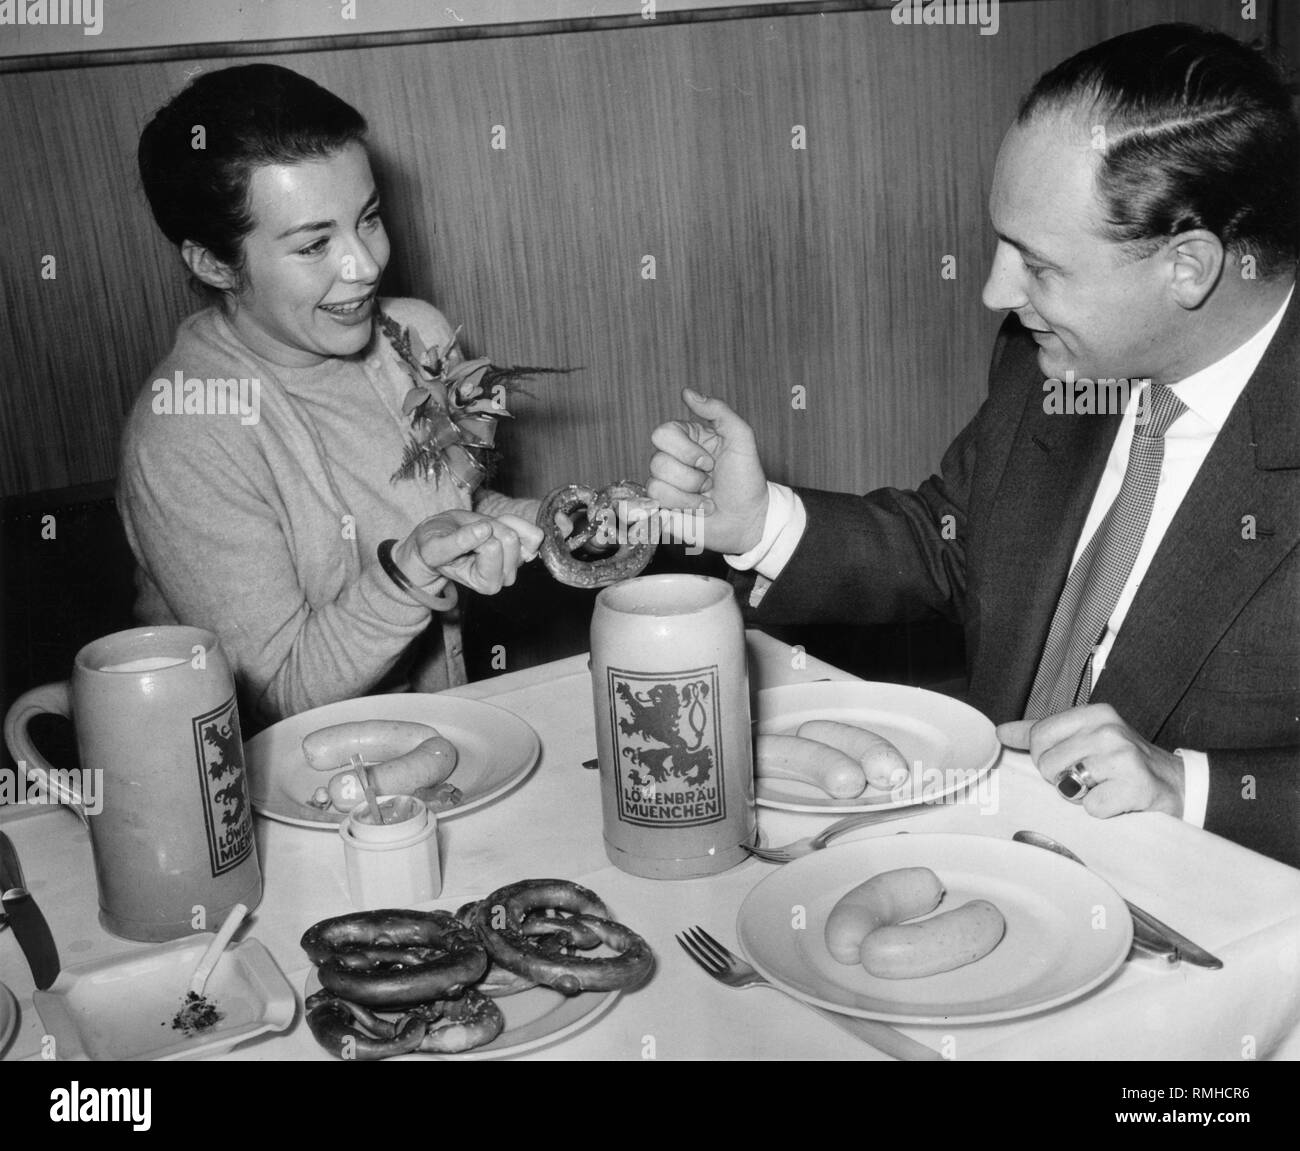 German film actress Marianne Koch at a Weisswurst breakfast. - Stock Image